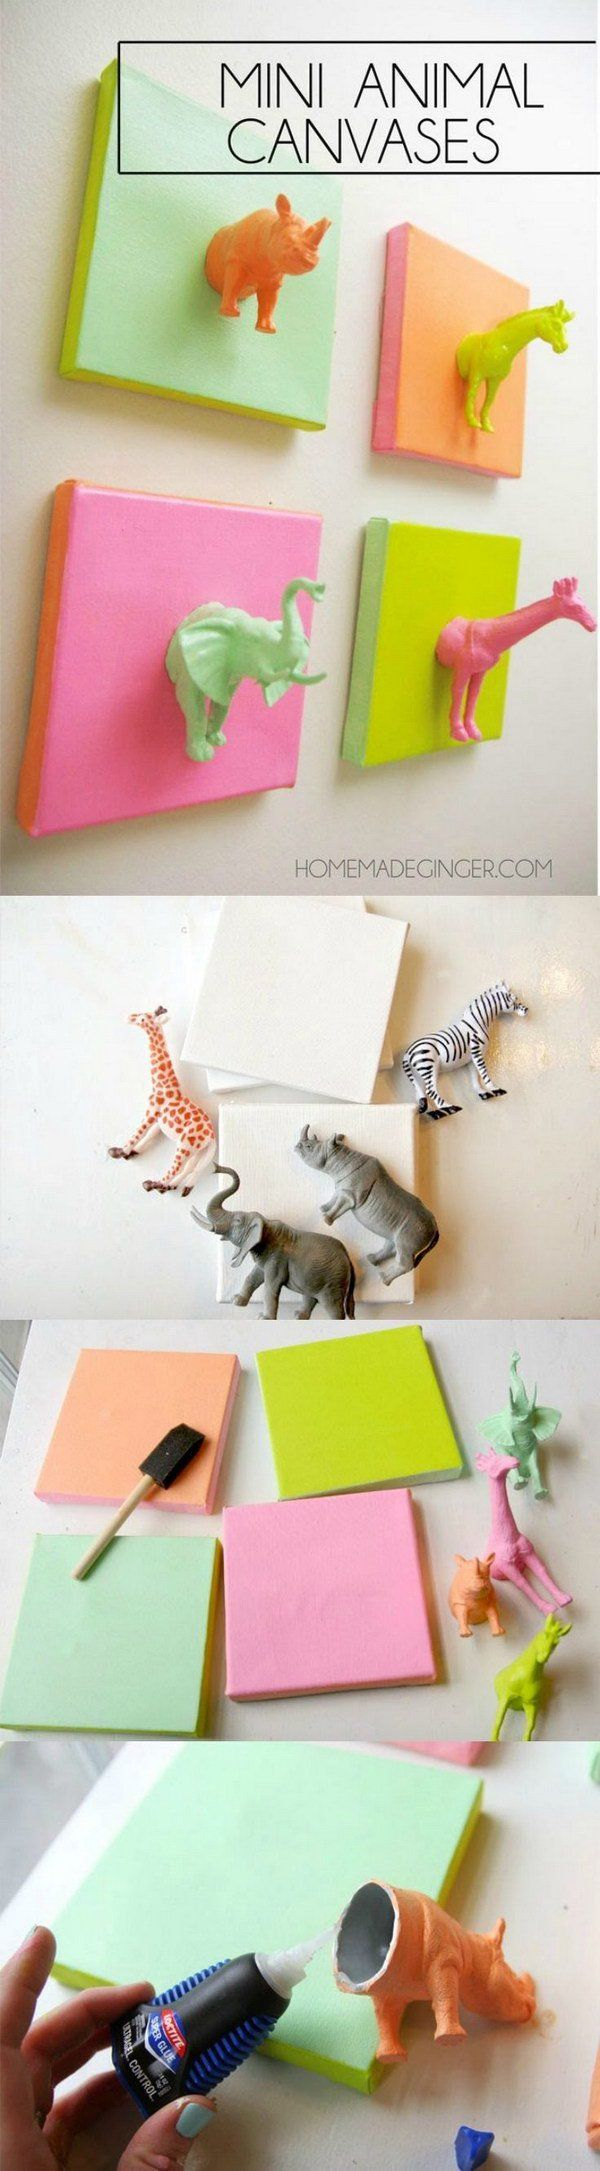 awesome wall art ideas u tutorials plastic animals diy canvas